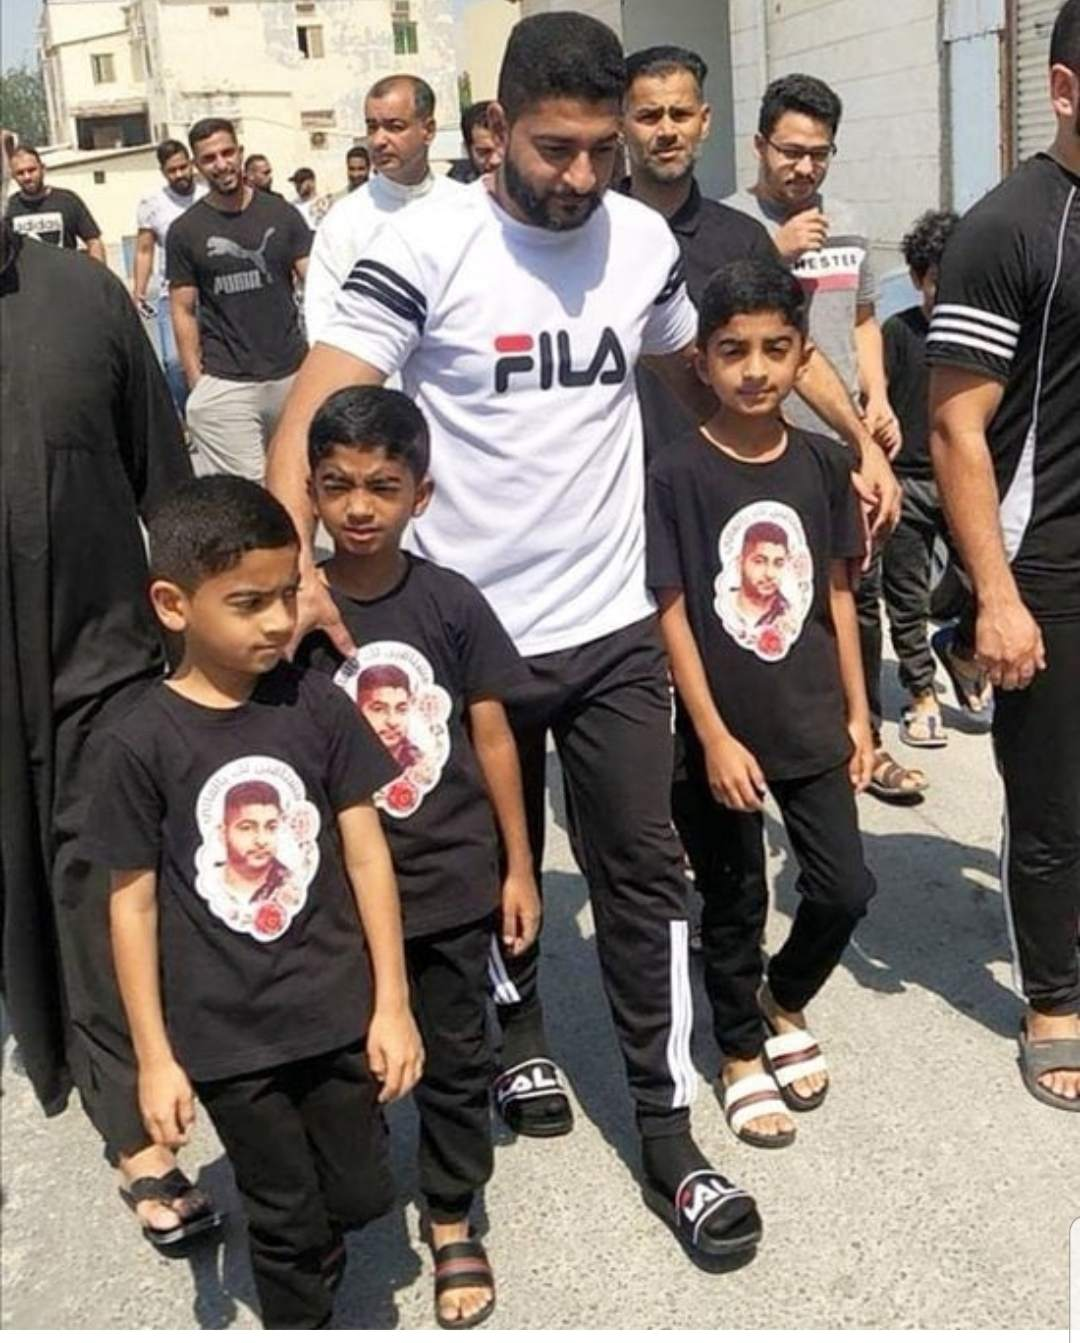 After 7 years of imprisonment on  political charge, the young hero, Ali al-Sheikh, embraces freedom